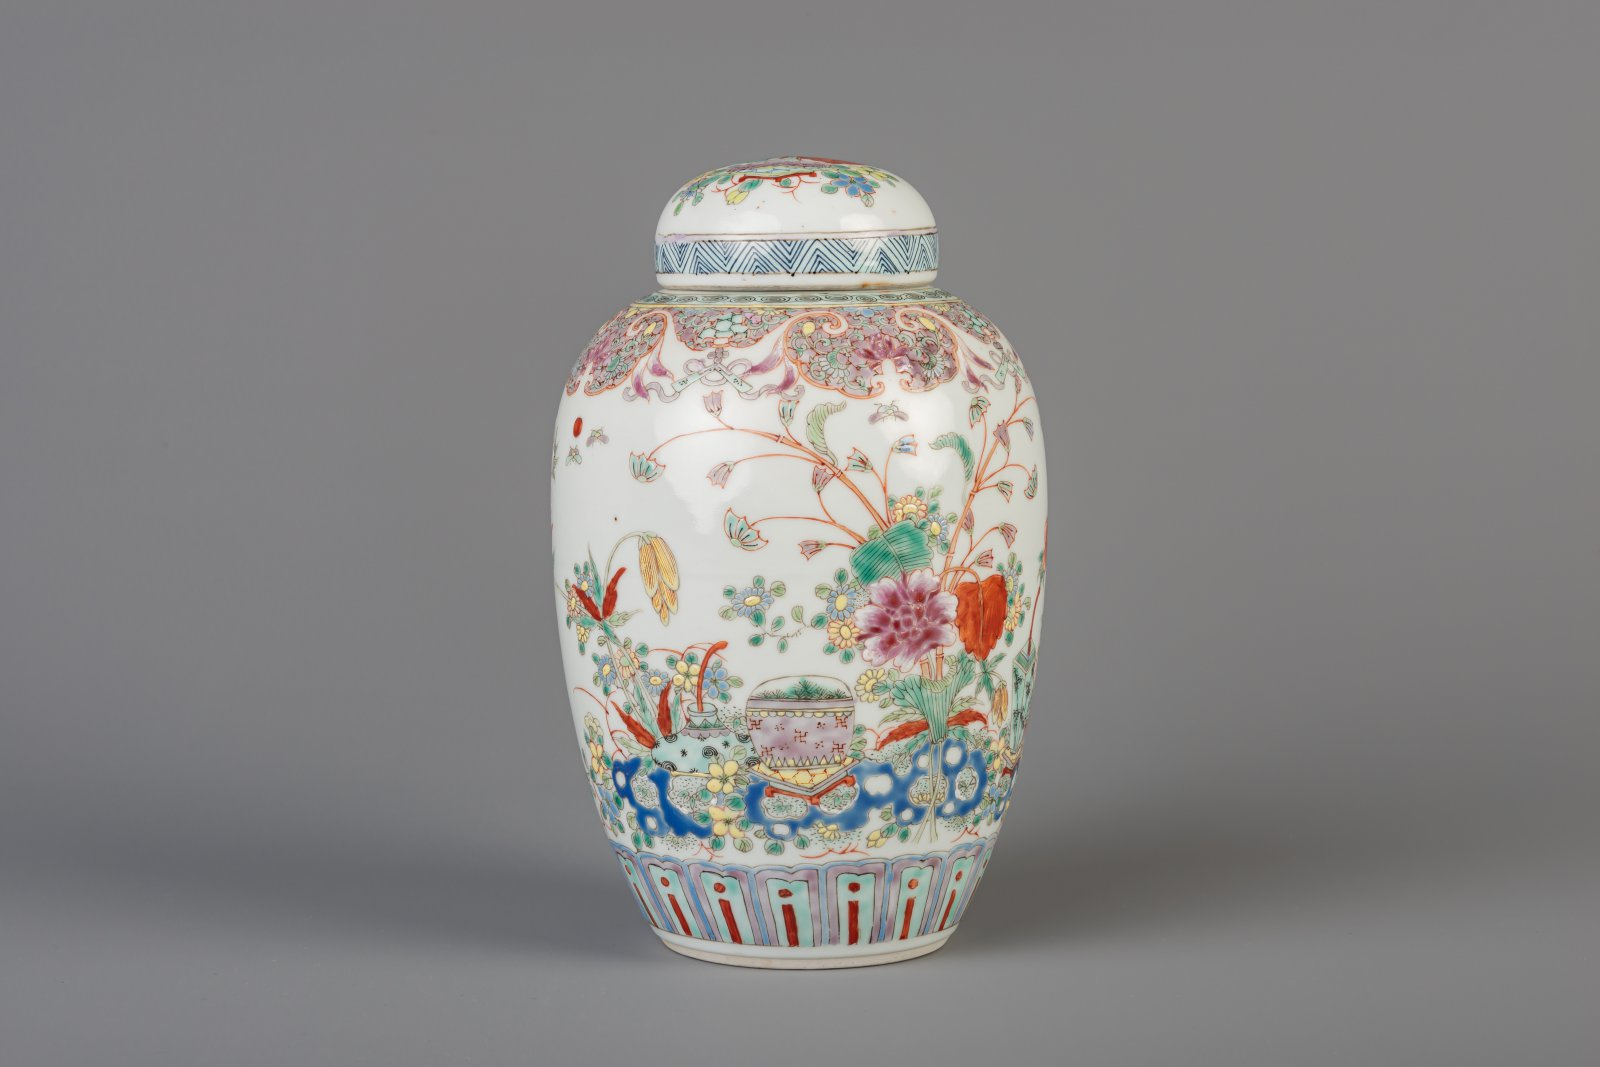 Lot 48 - A Chinese famille rose ginger jar and cover with floral design, 19th C.